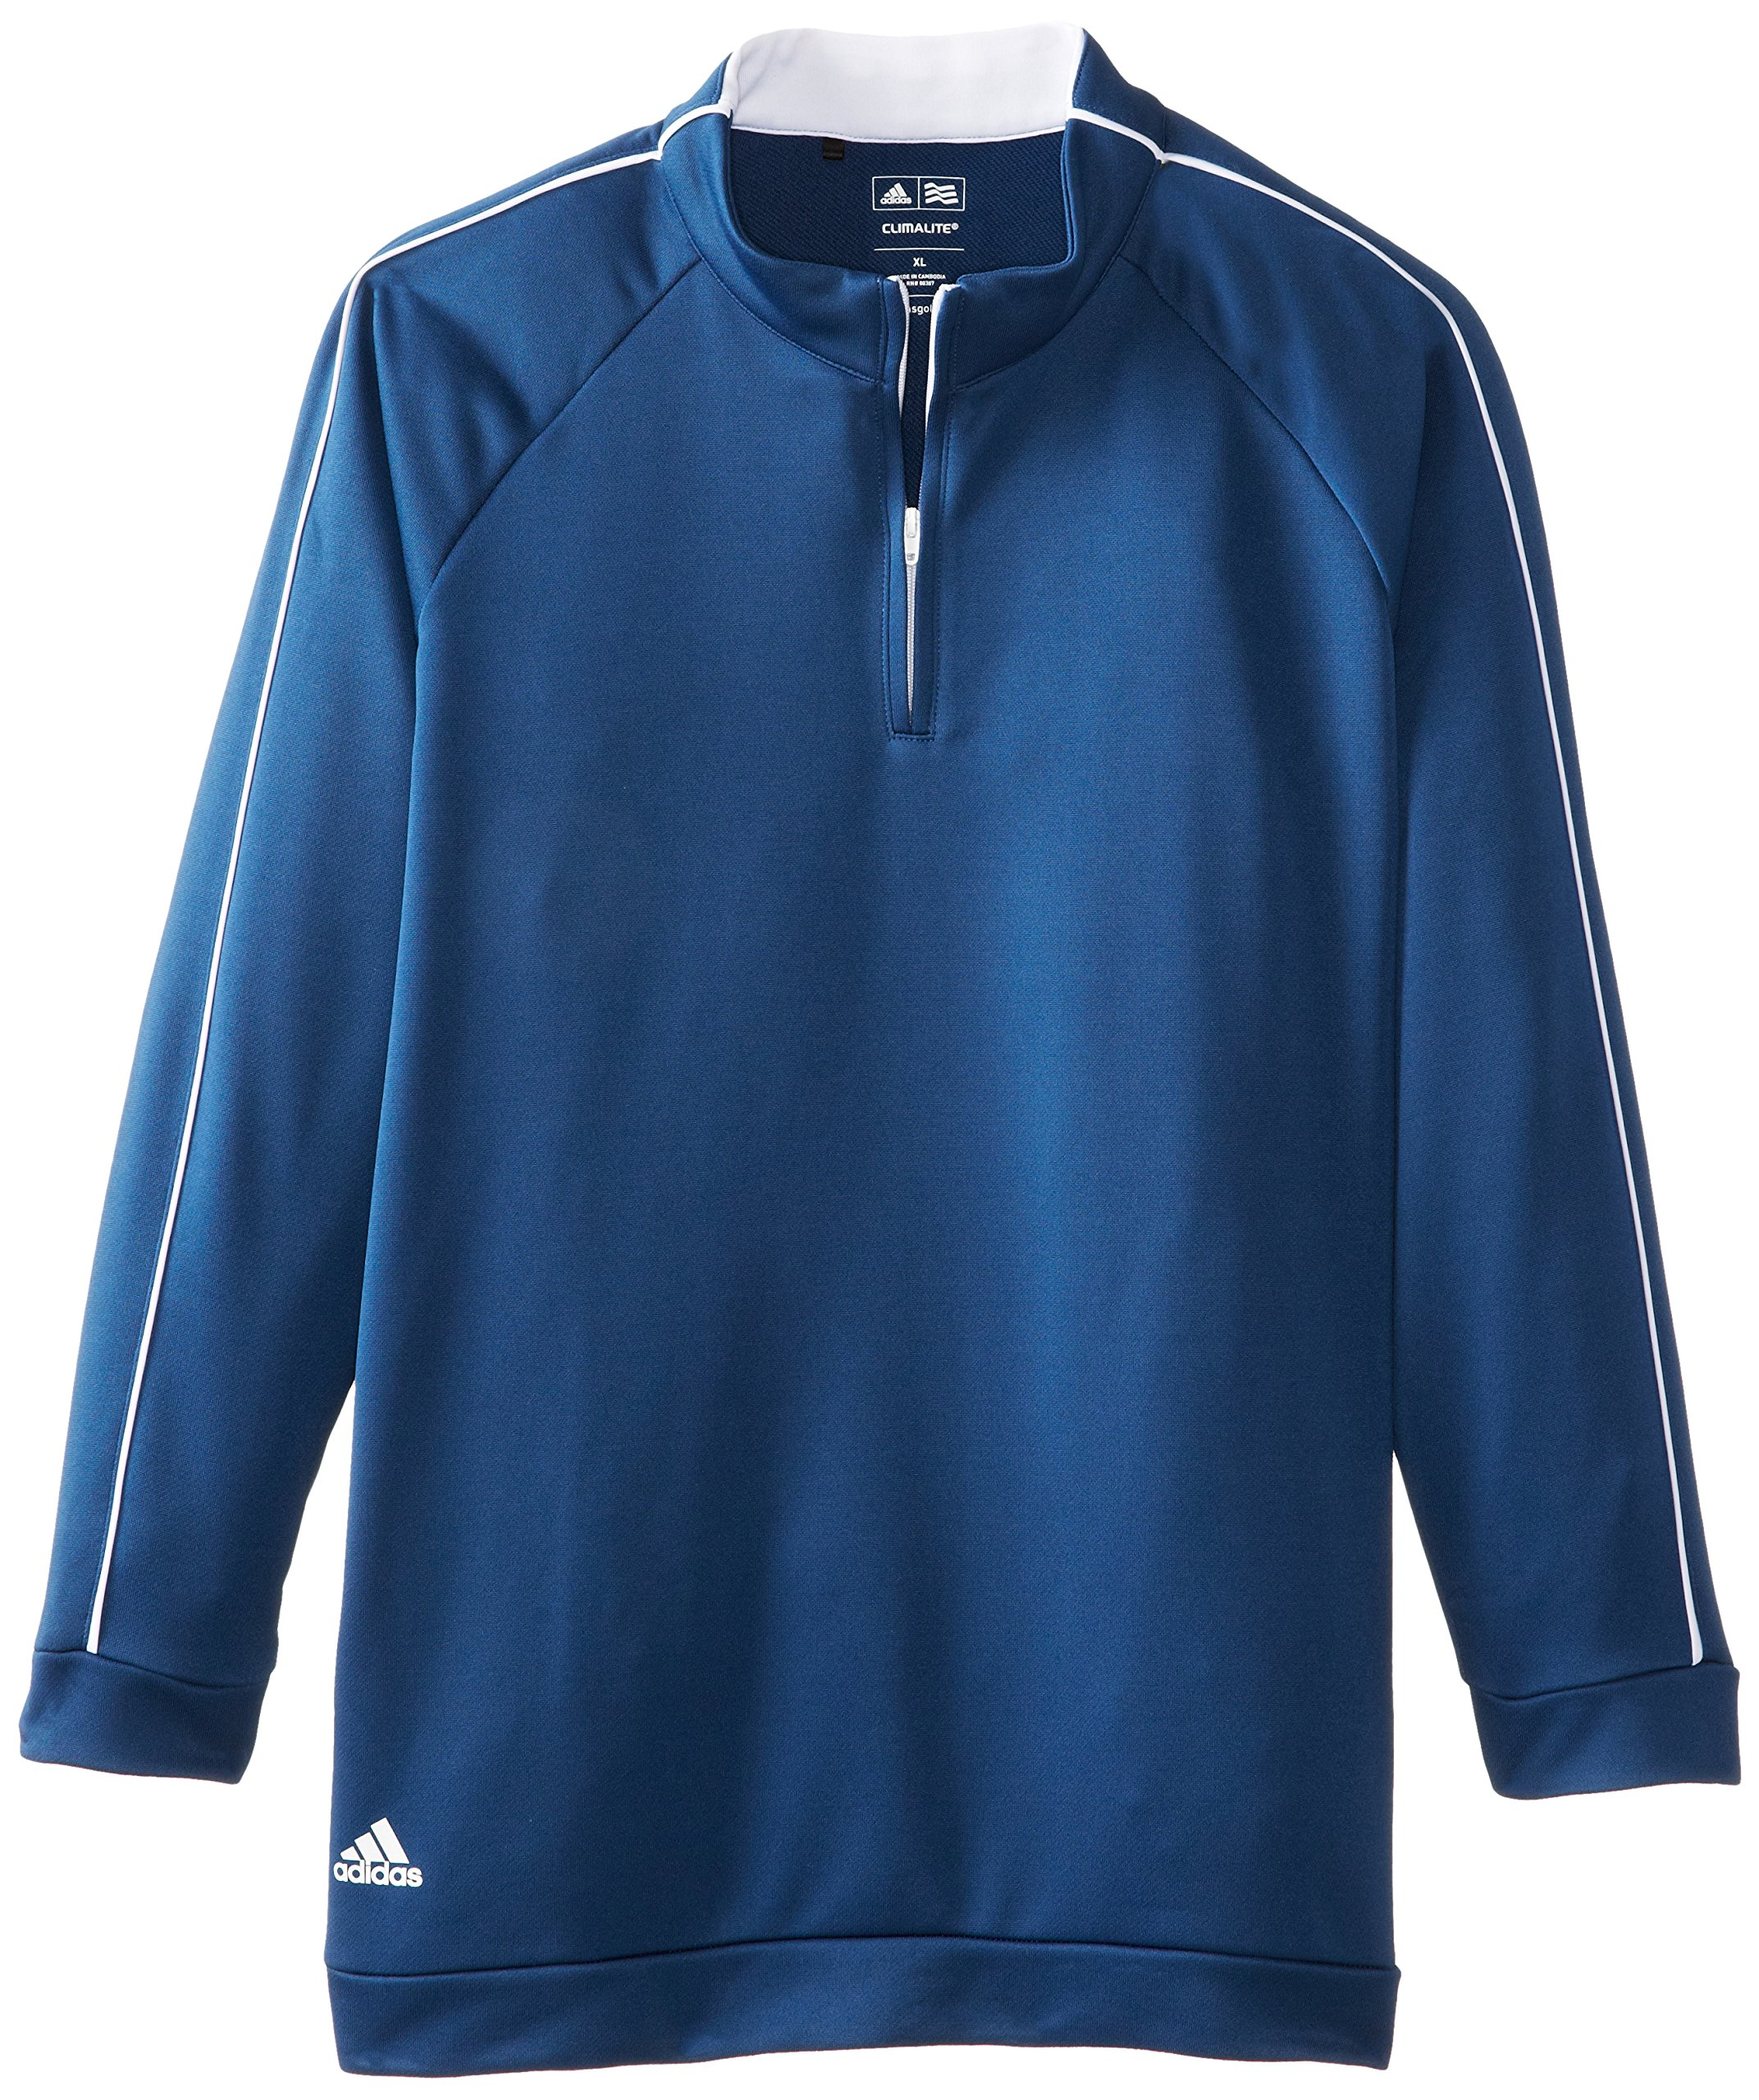 adidas Golf Boy's 3-Stripes Piped 1/4 Zip Jacket, Midnight/White, Large by adidas